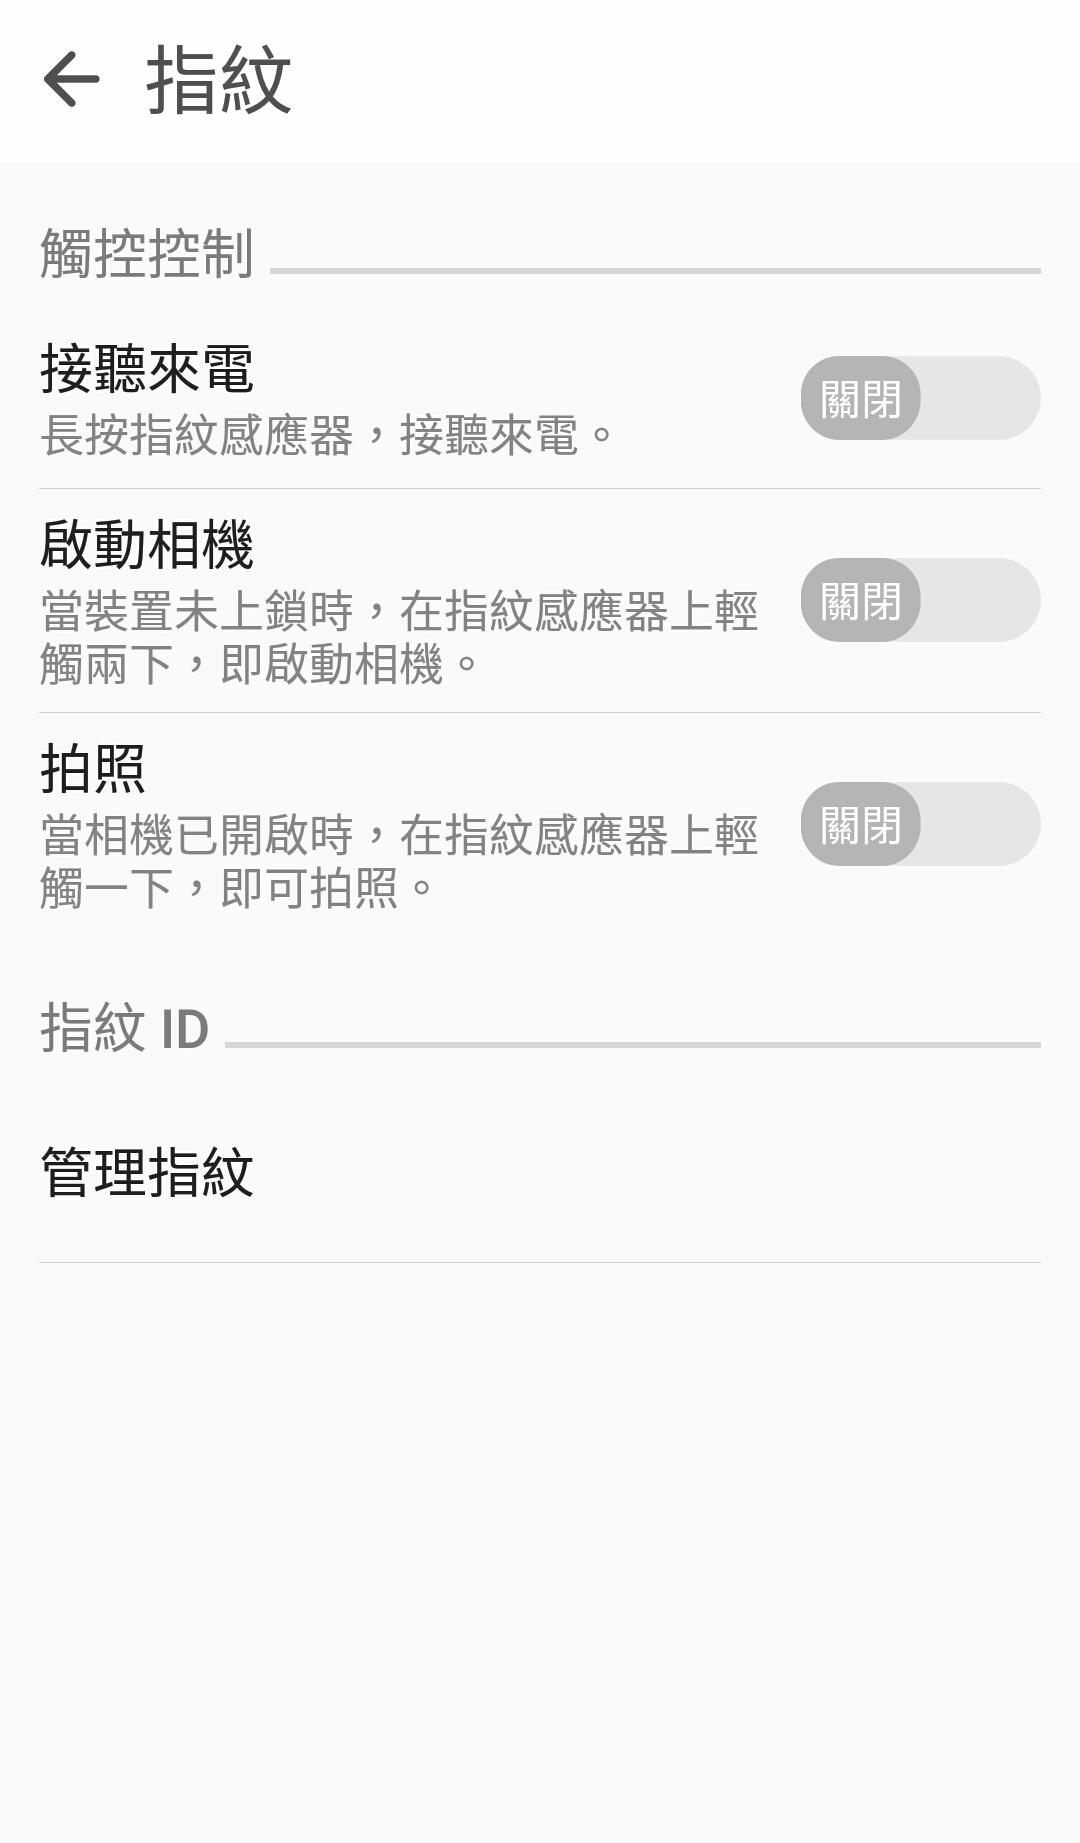 質感再升級的 Zenfone 3 冰河銀 Deluxe 6GB/64G 開箱 - XFastest - Screenshot_20161006-090530.jpg